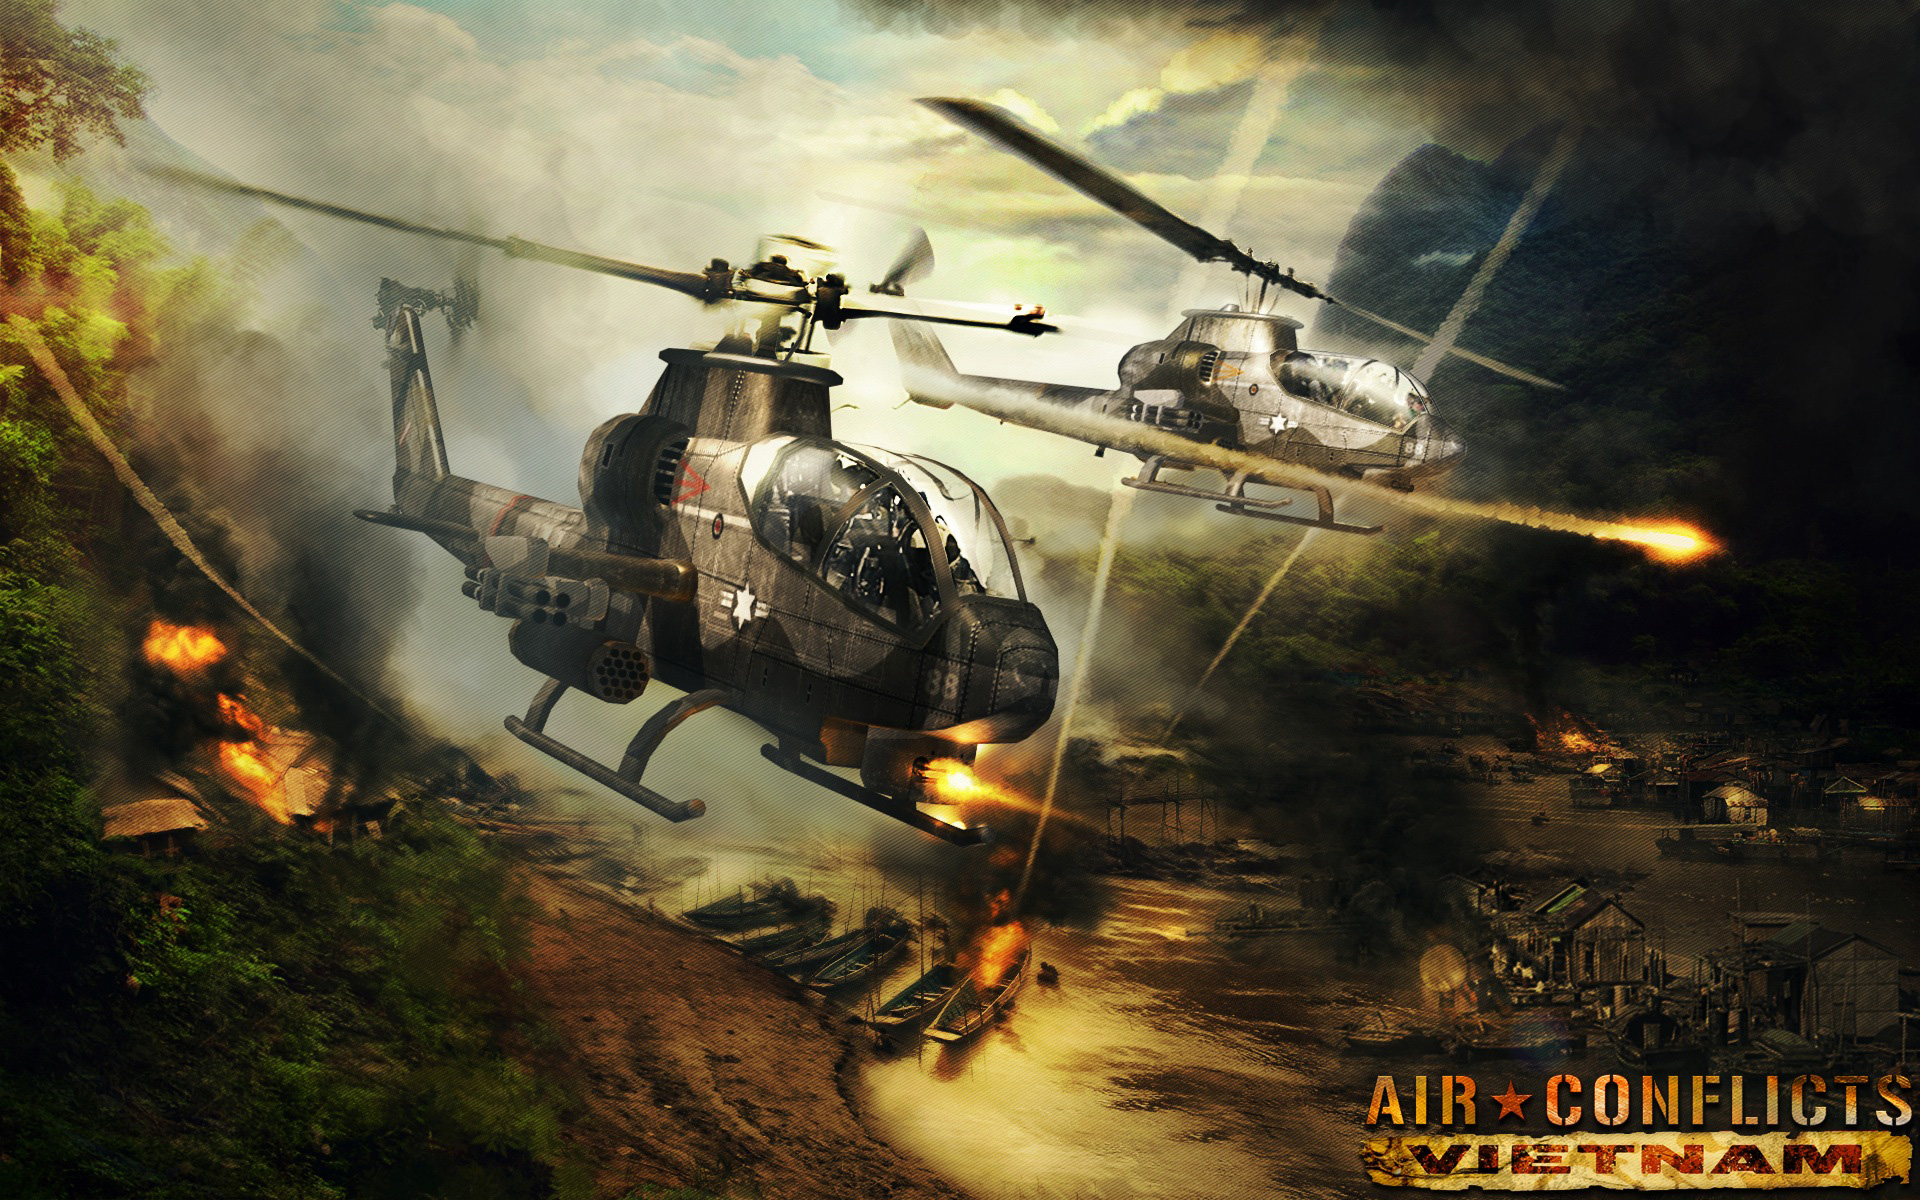 Air Conflicts: Vietnam Wallpaper in 1920x1200